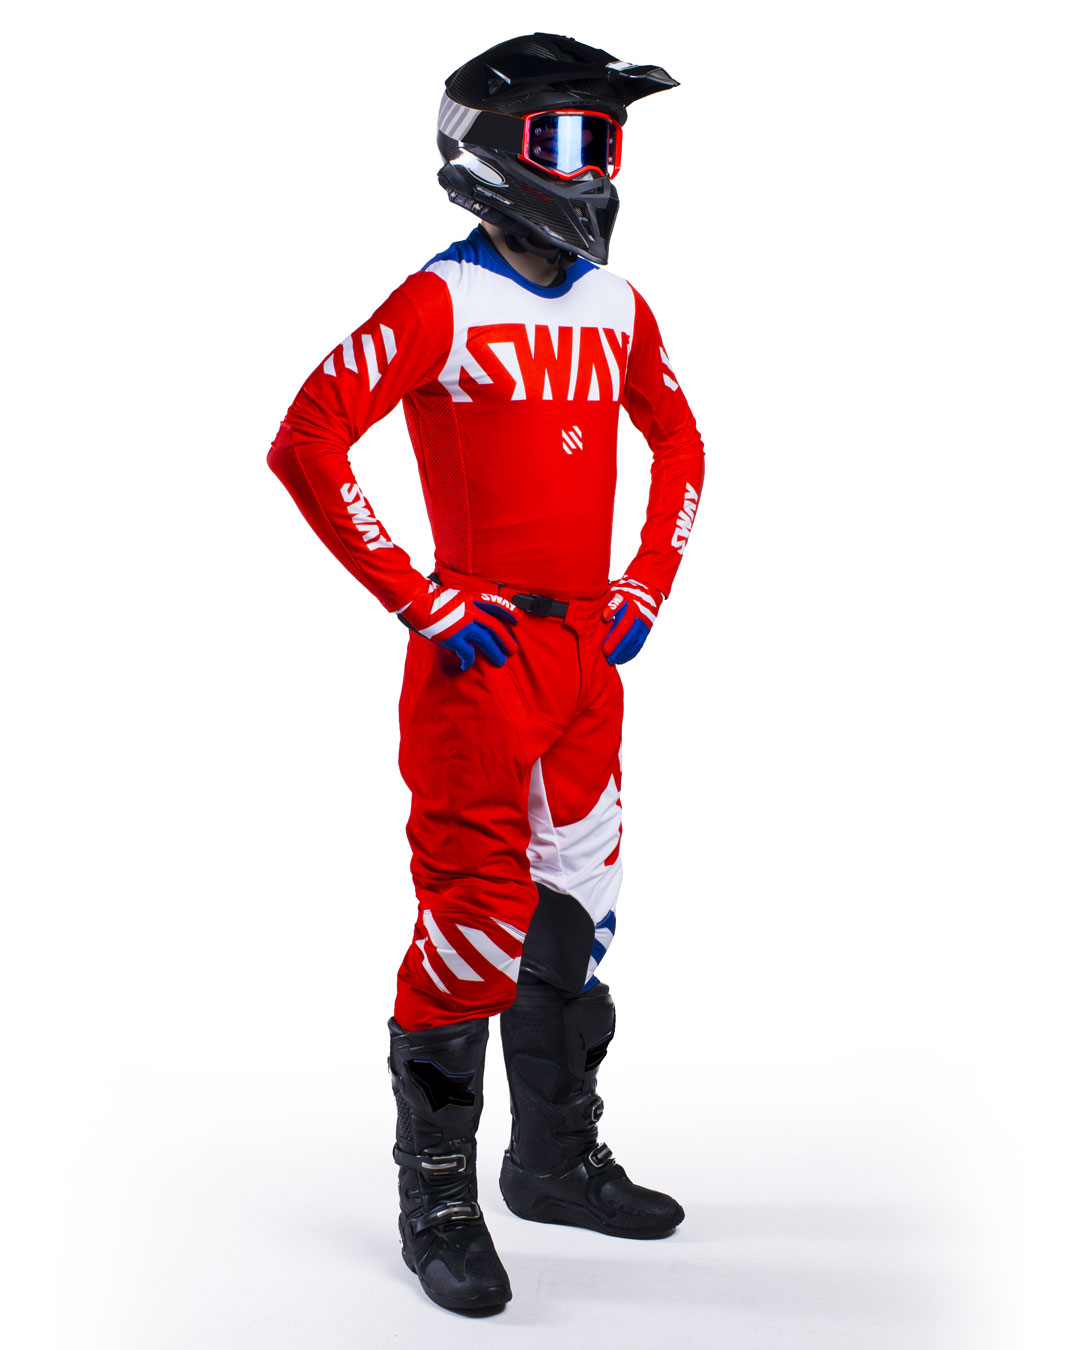 Sway MX SX0 Gear Set - Red and Blue